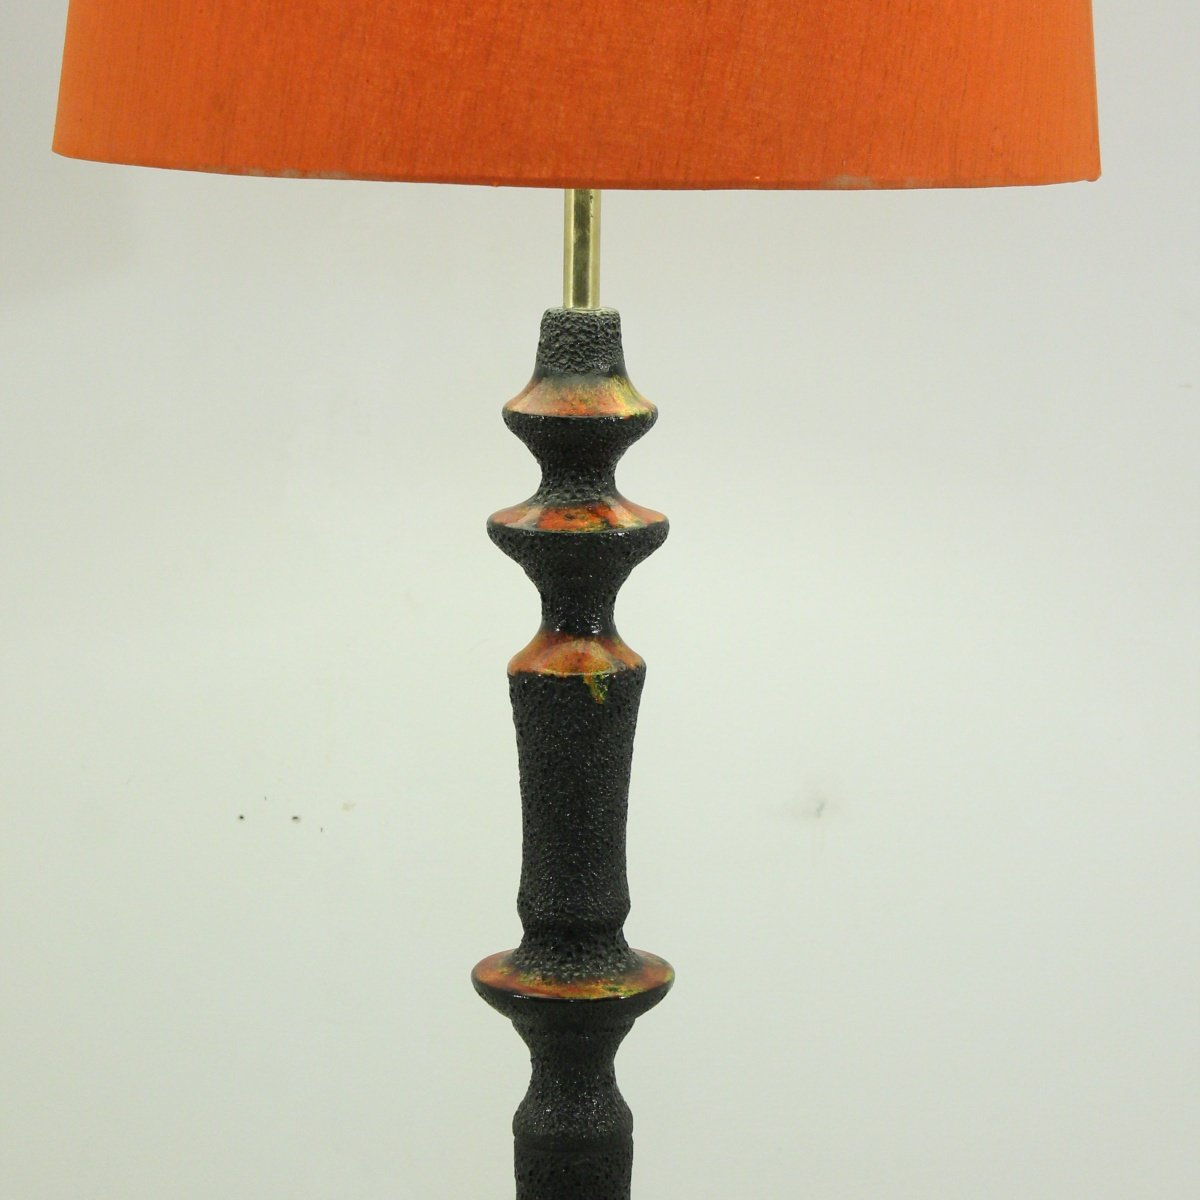 West german floor lamp 1970s for sale at pamono for 1970s floor lamps